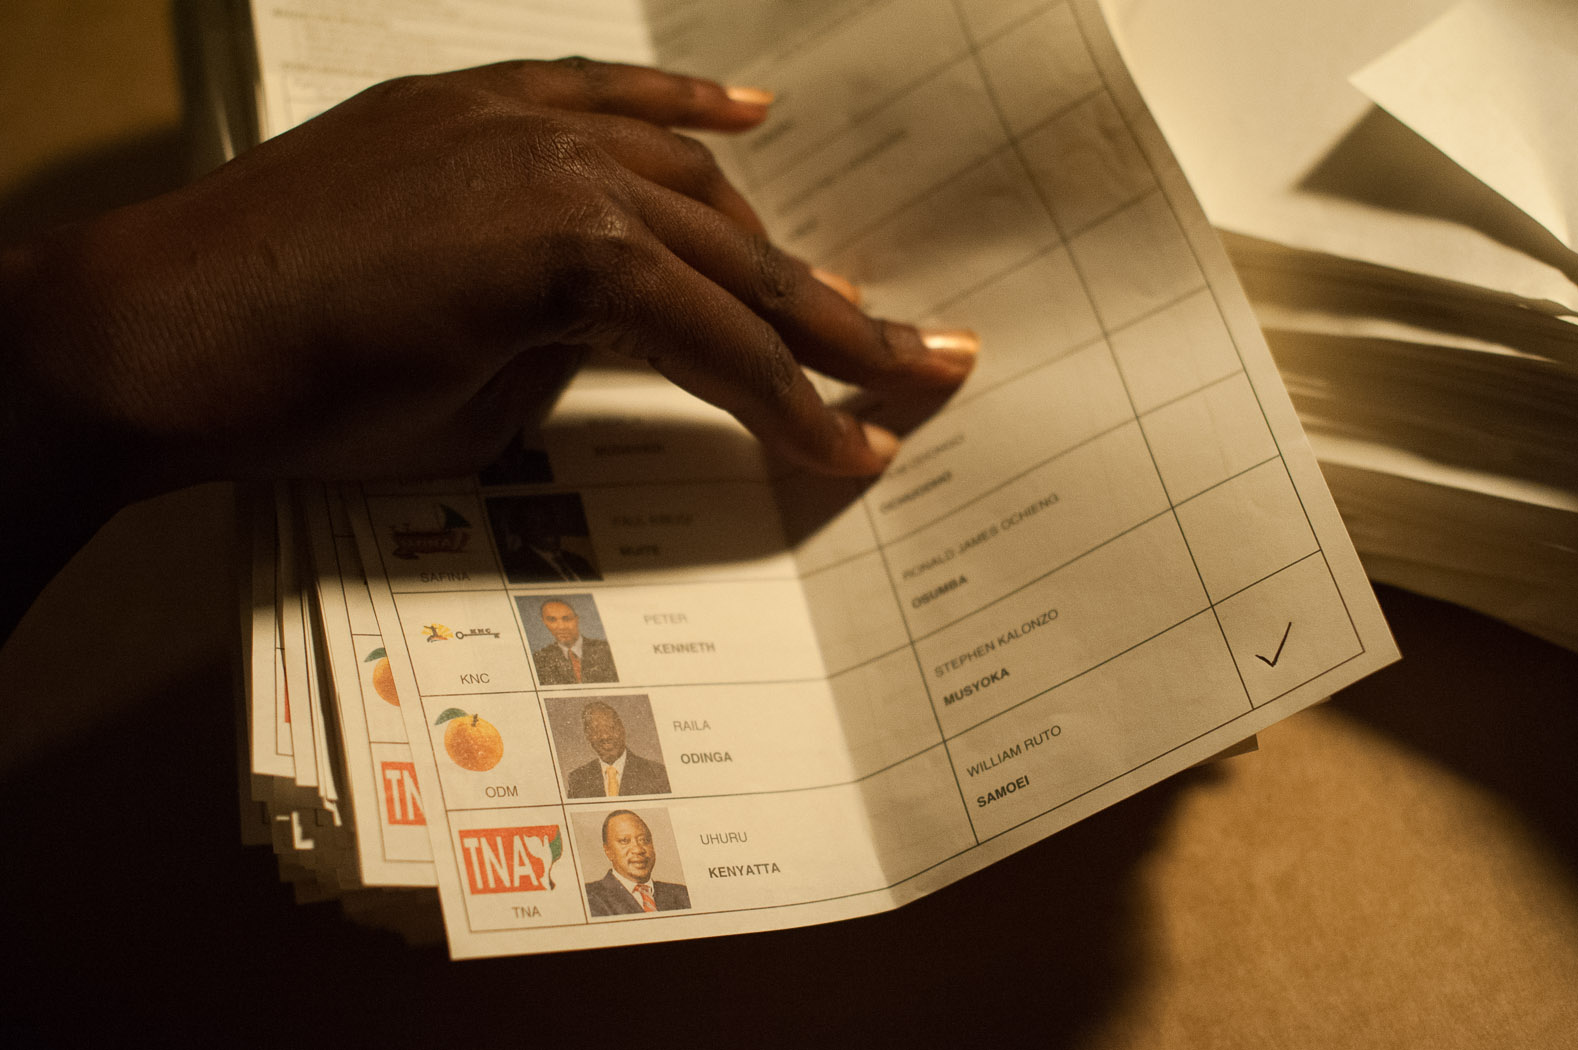 Tallying began almost immediately after voting ended, with Uhuru Kenyatta taking an early, but uncertain lead.